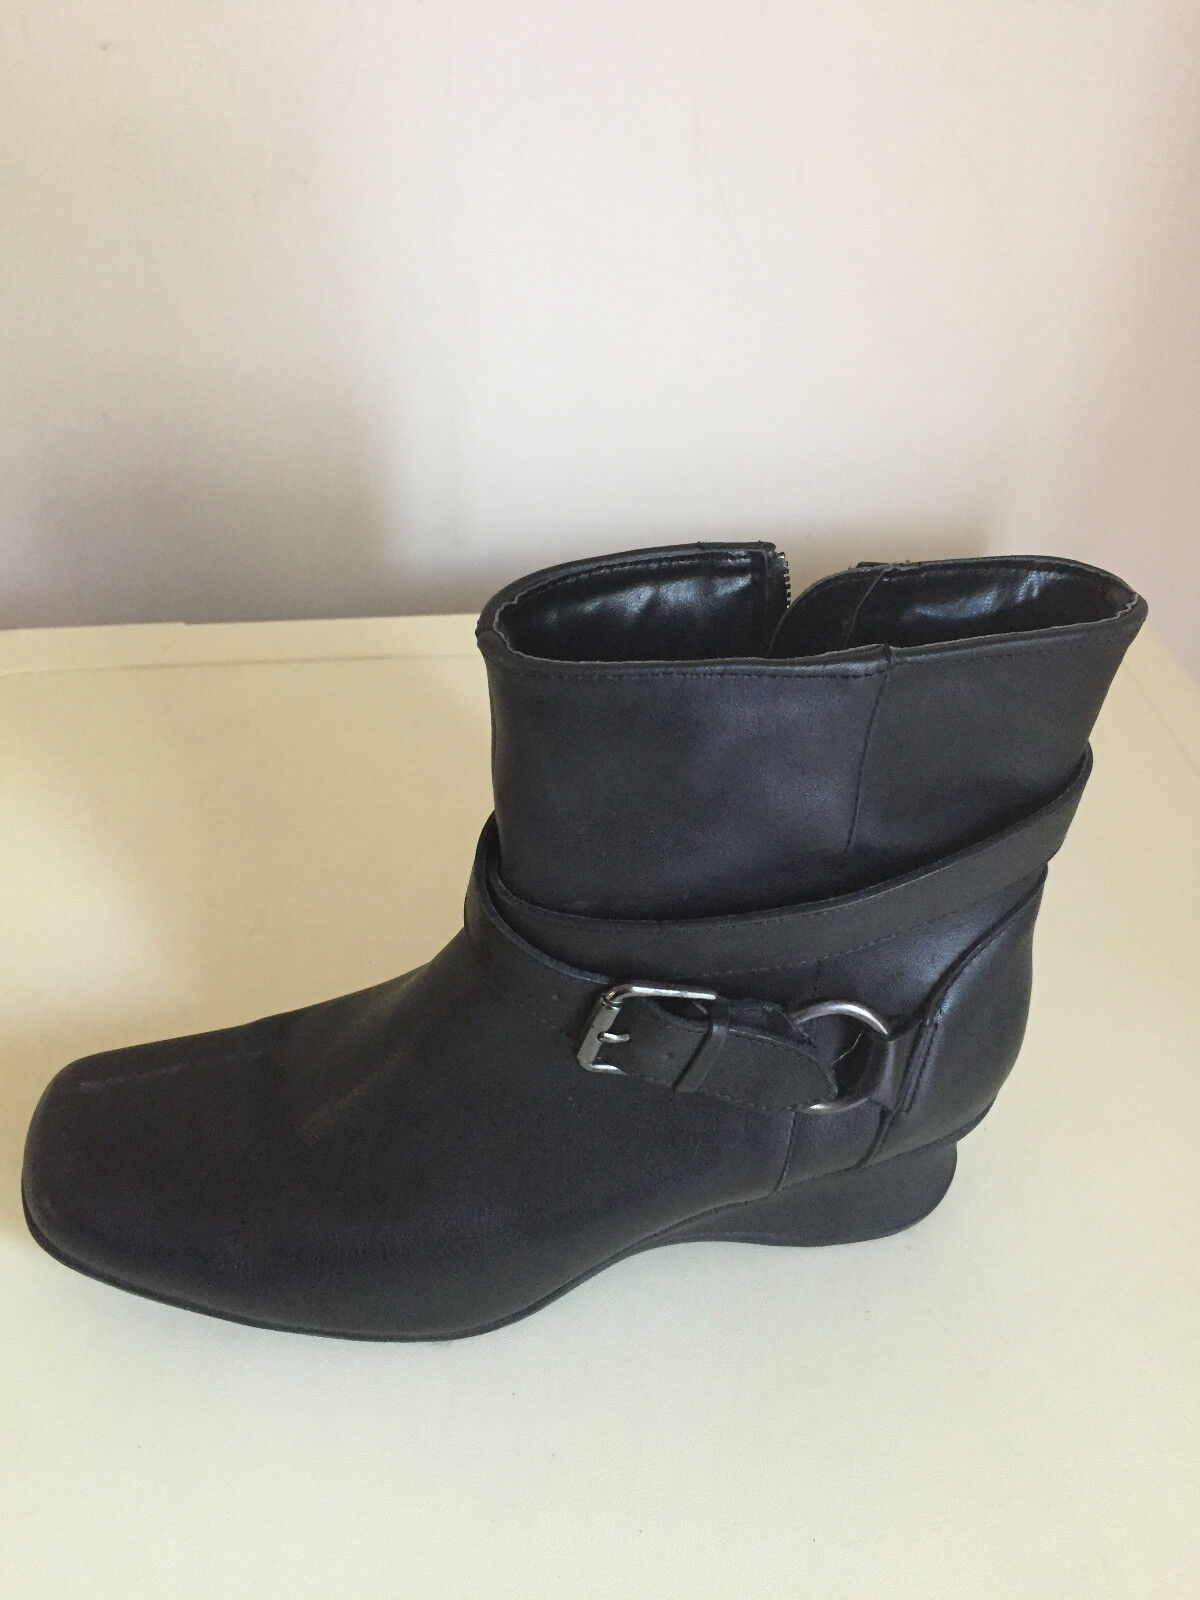 Ladies Womens WEDGE NEXT Zip Leather Ankle Boots Shoes Size 6.5